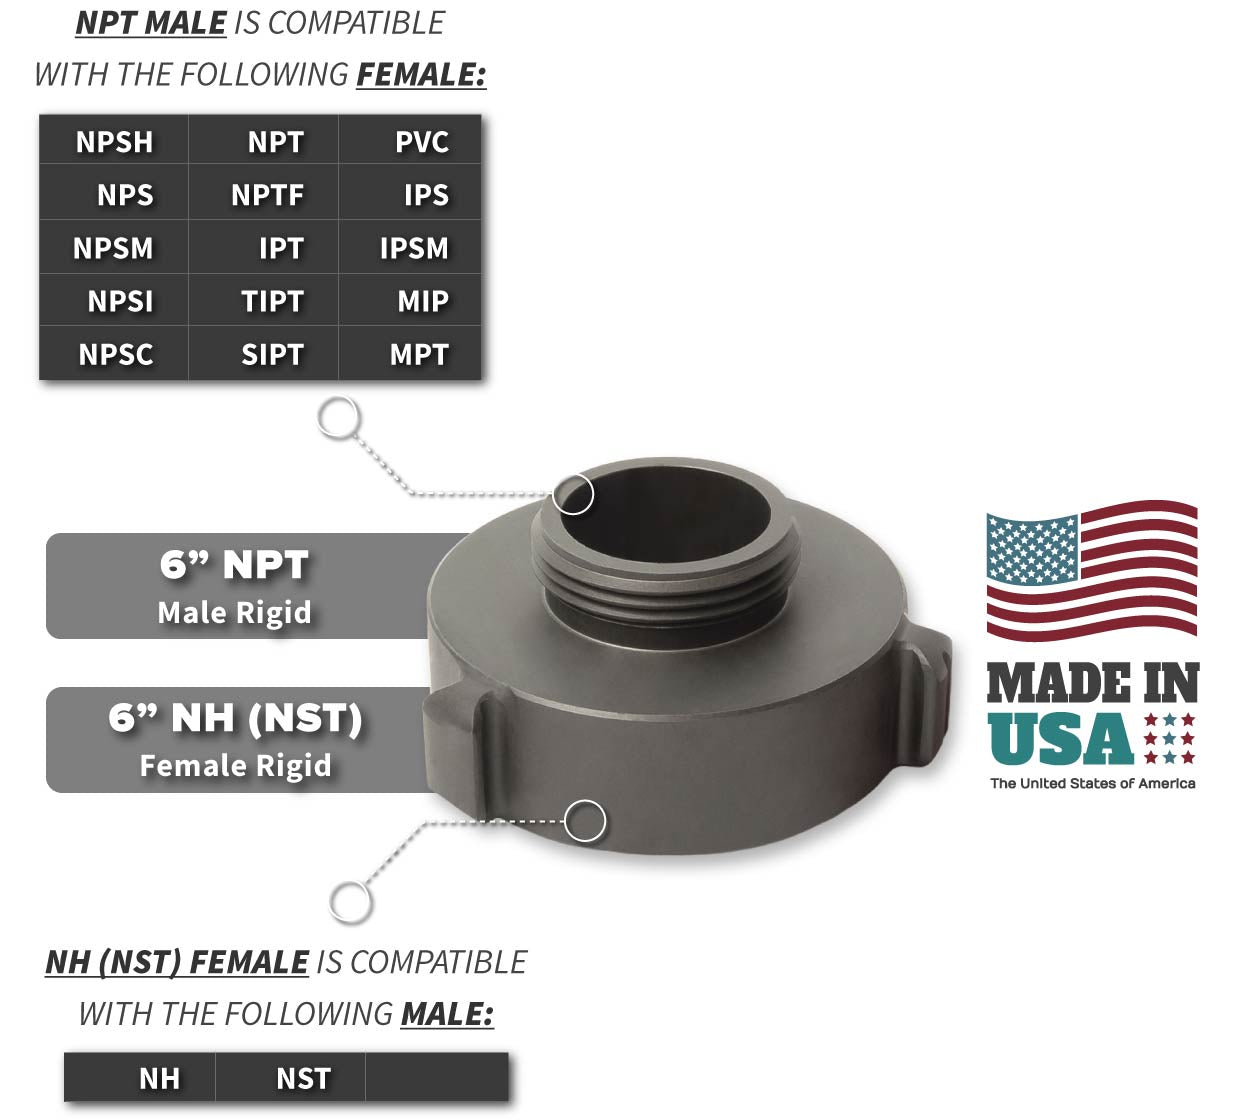 6 Inch NH-NST Female x 6 Inch NPT Male Compatibility Thread Chart